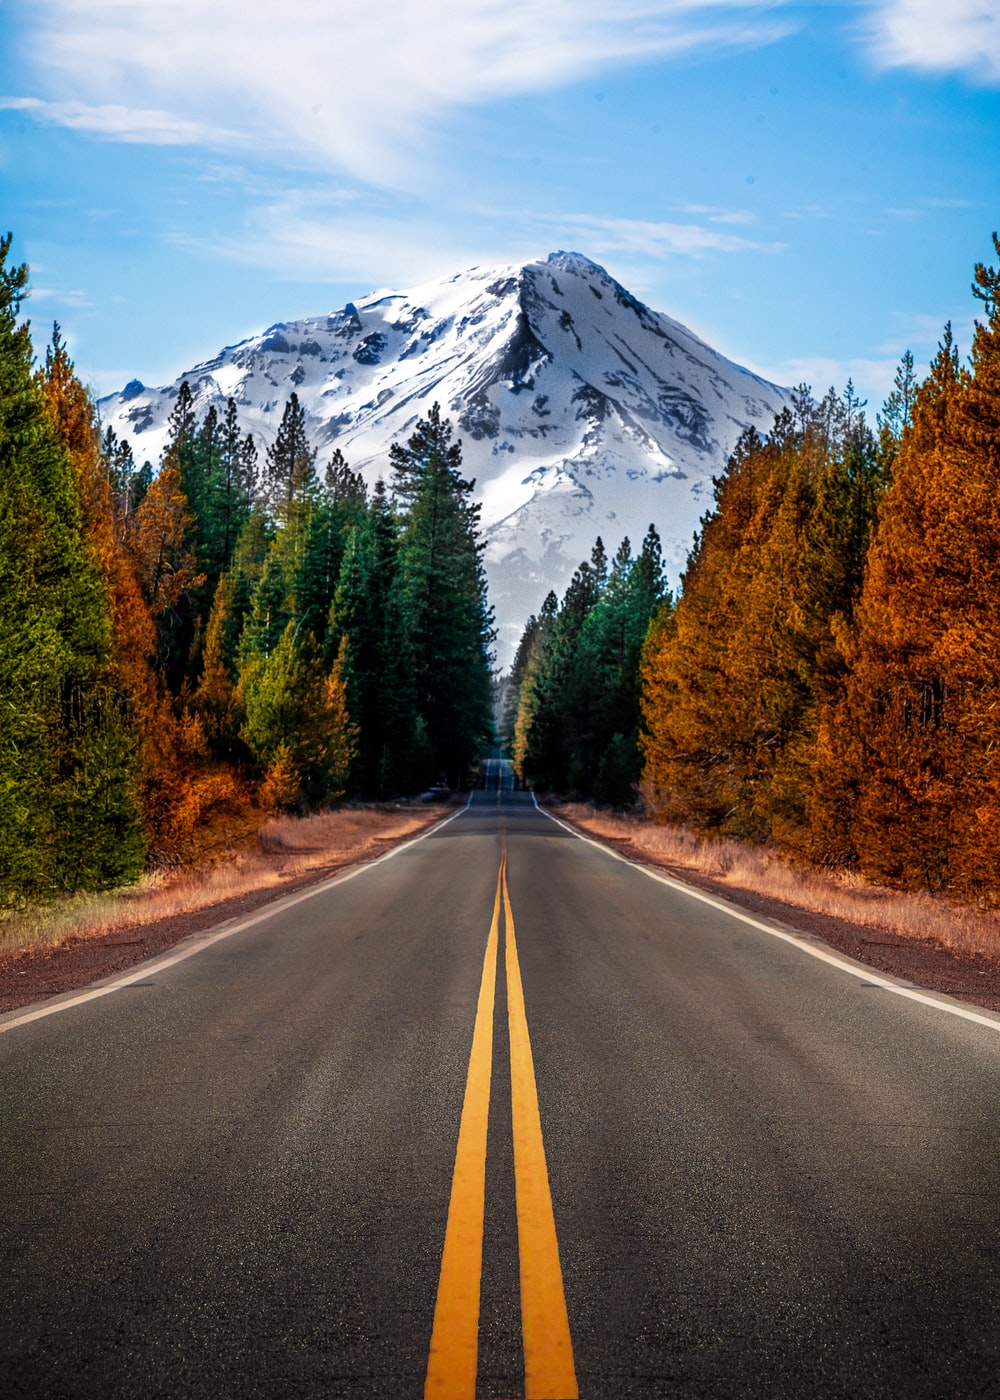 gray concrete road between green trees and mountain during daytime